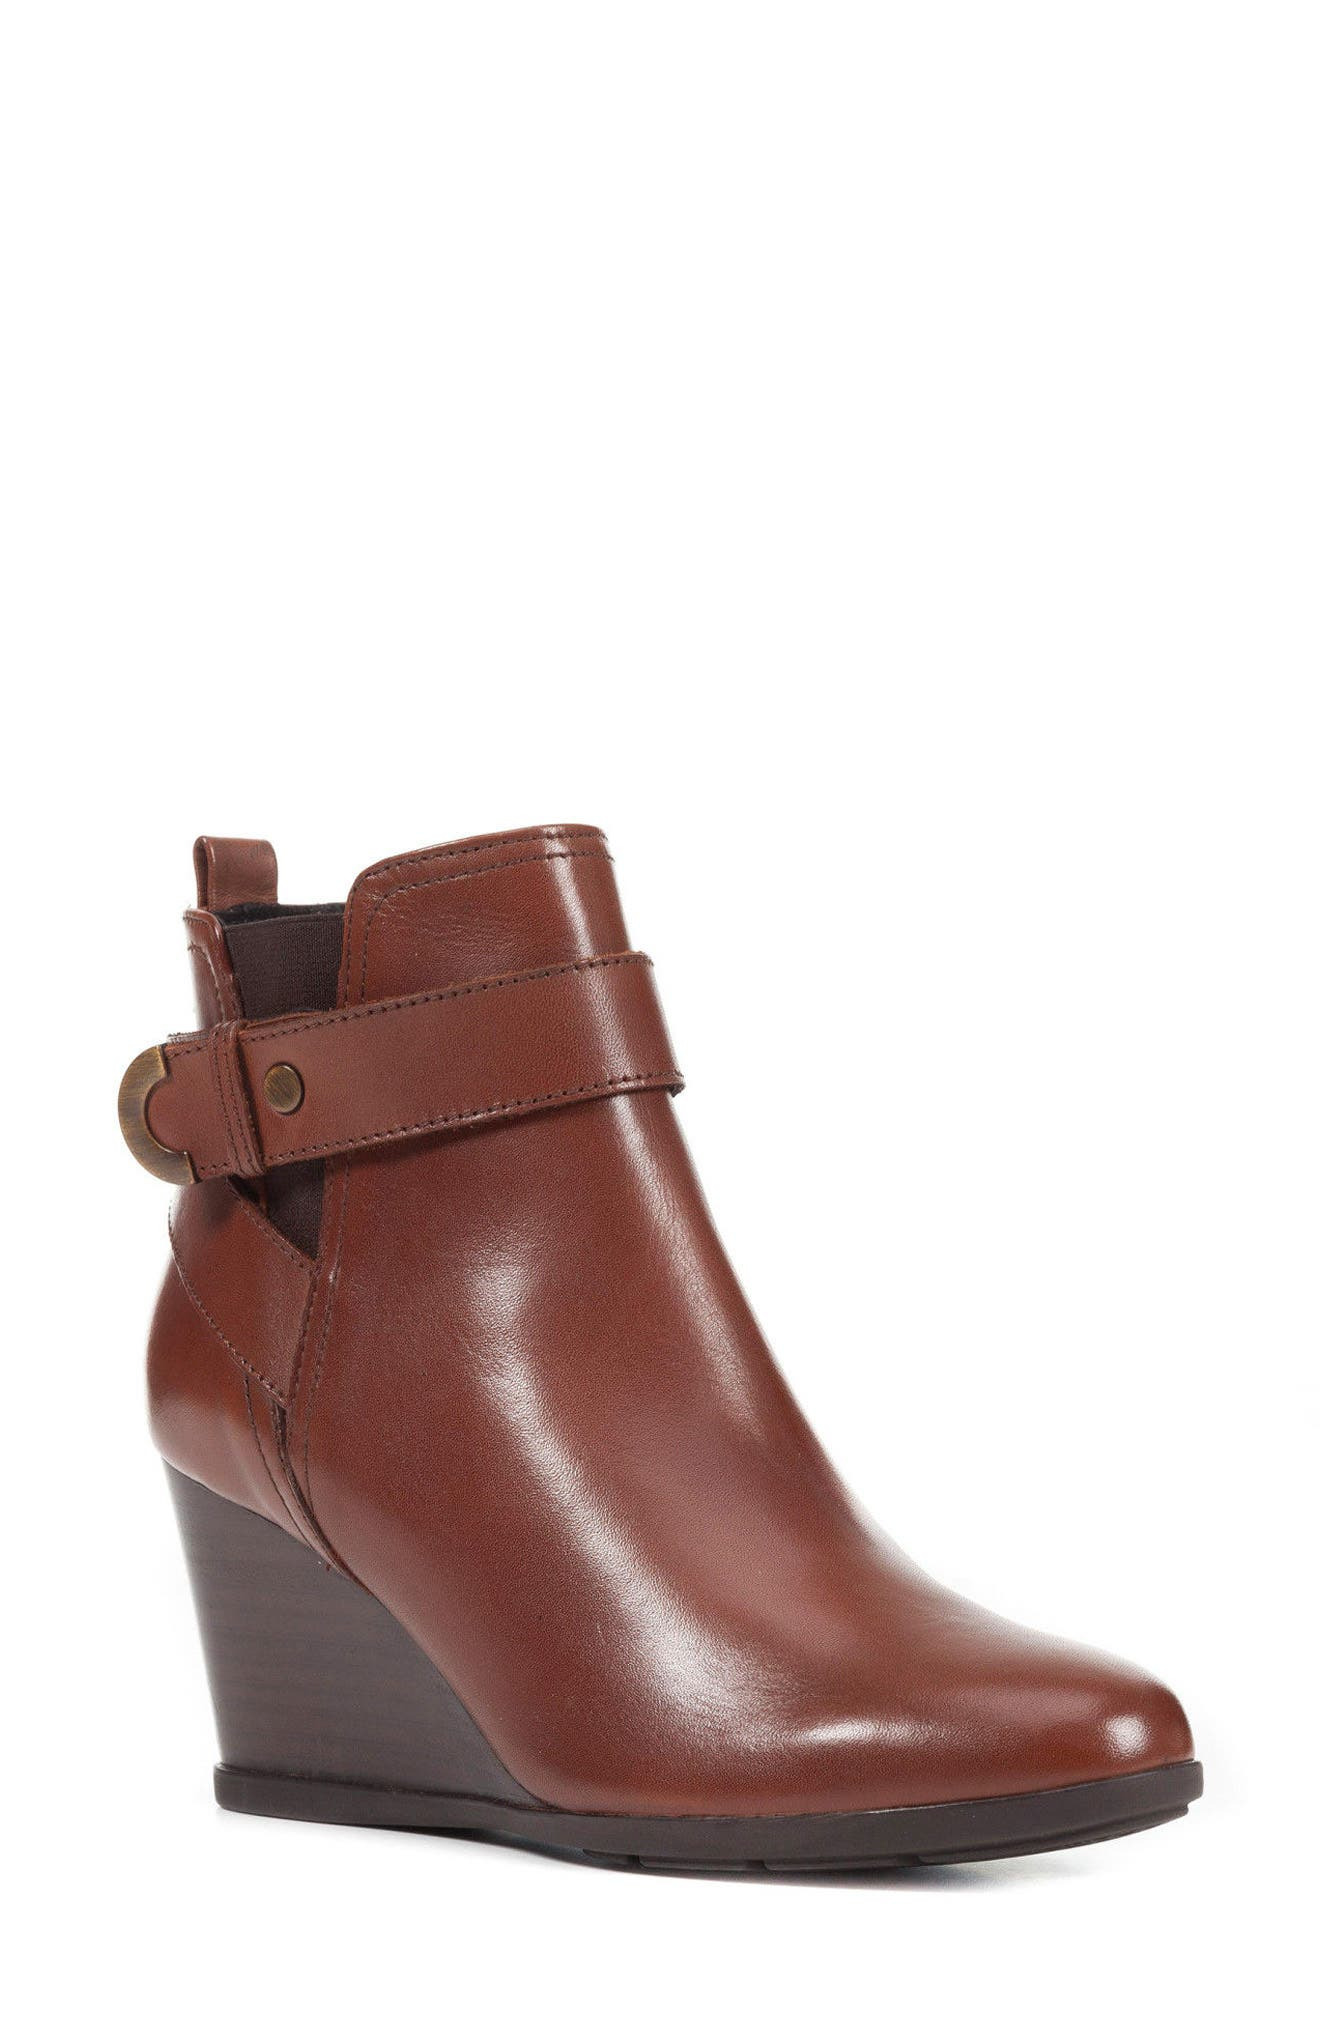 Alternate Image 1 Selected - Geox Inspiration Buckle Wedge Bootie (Women)